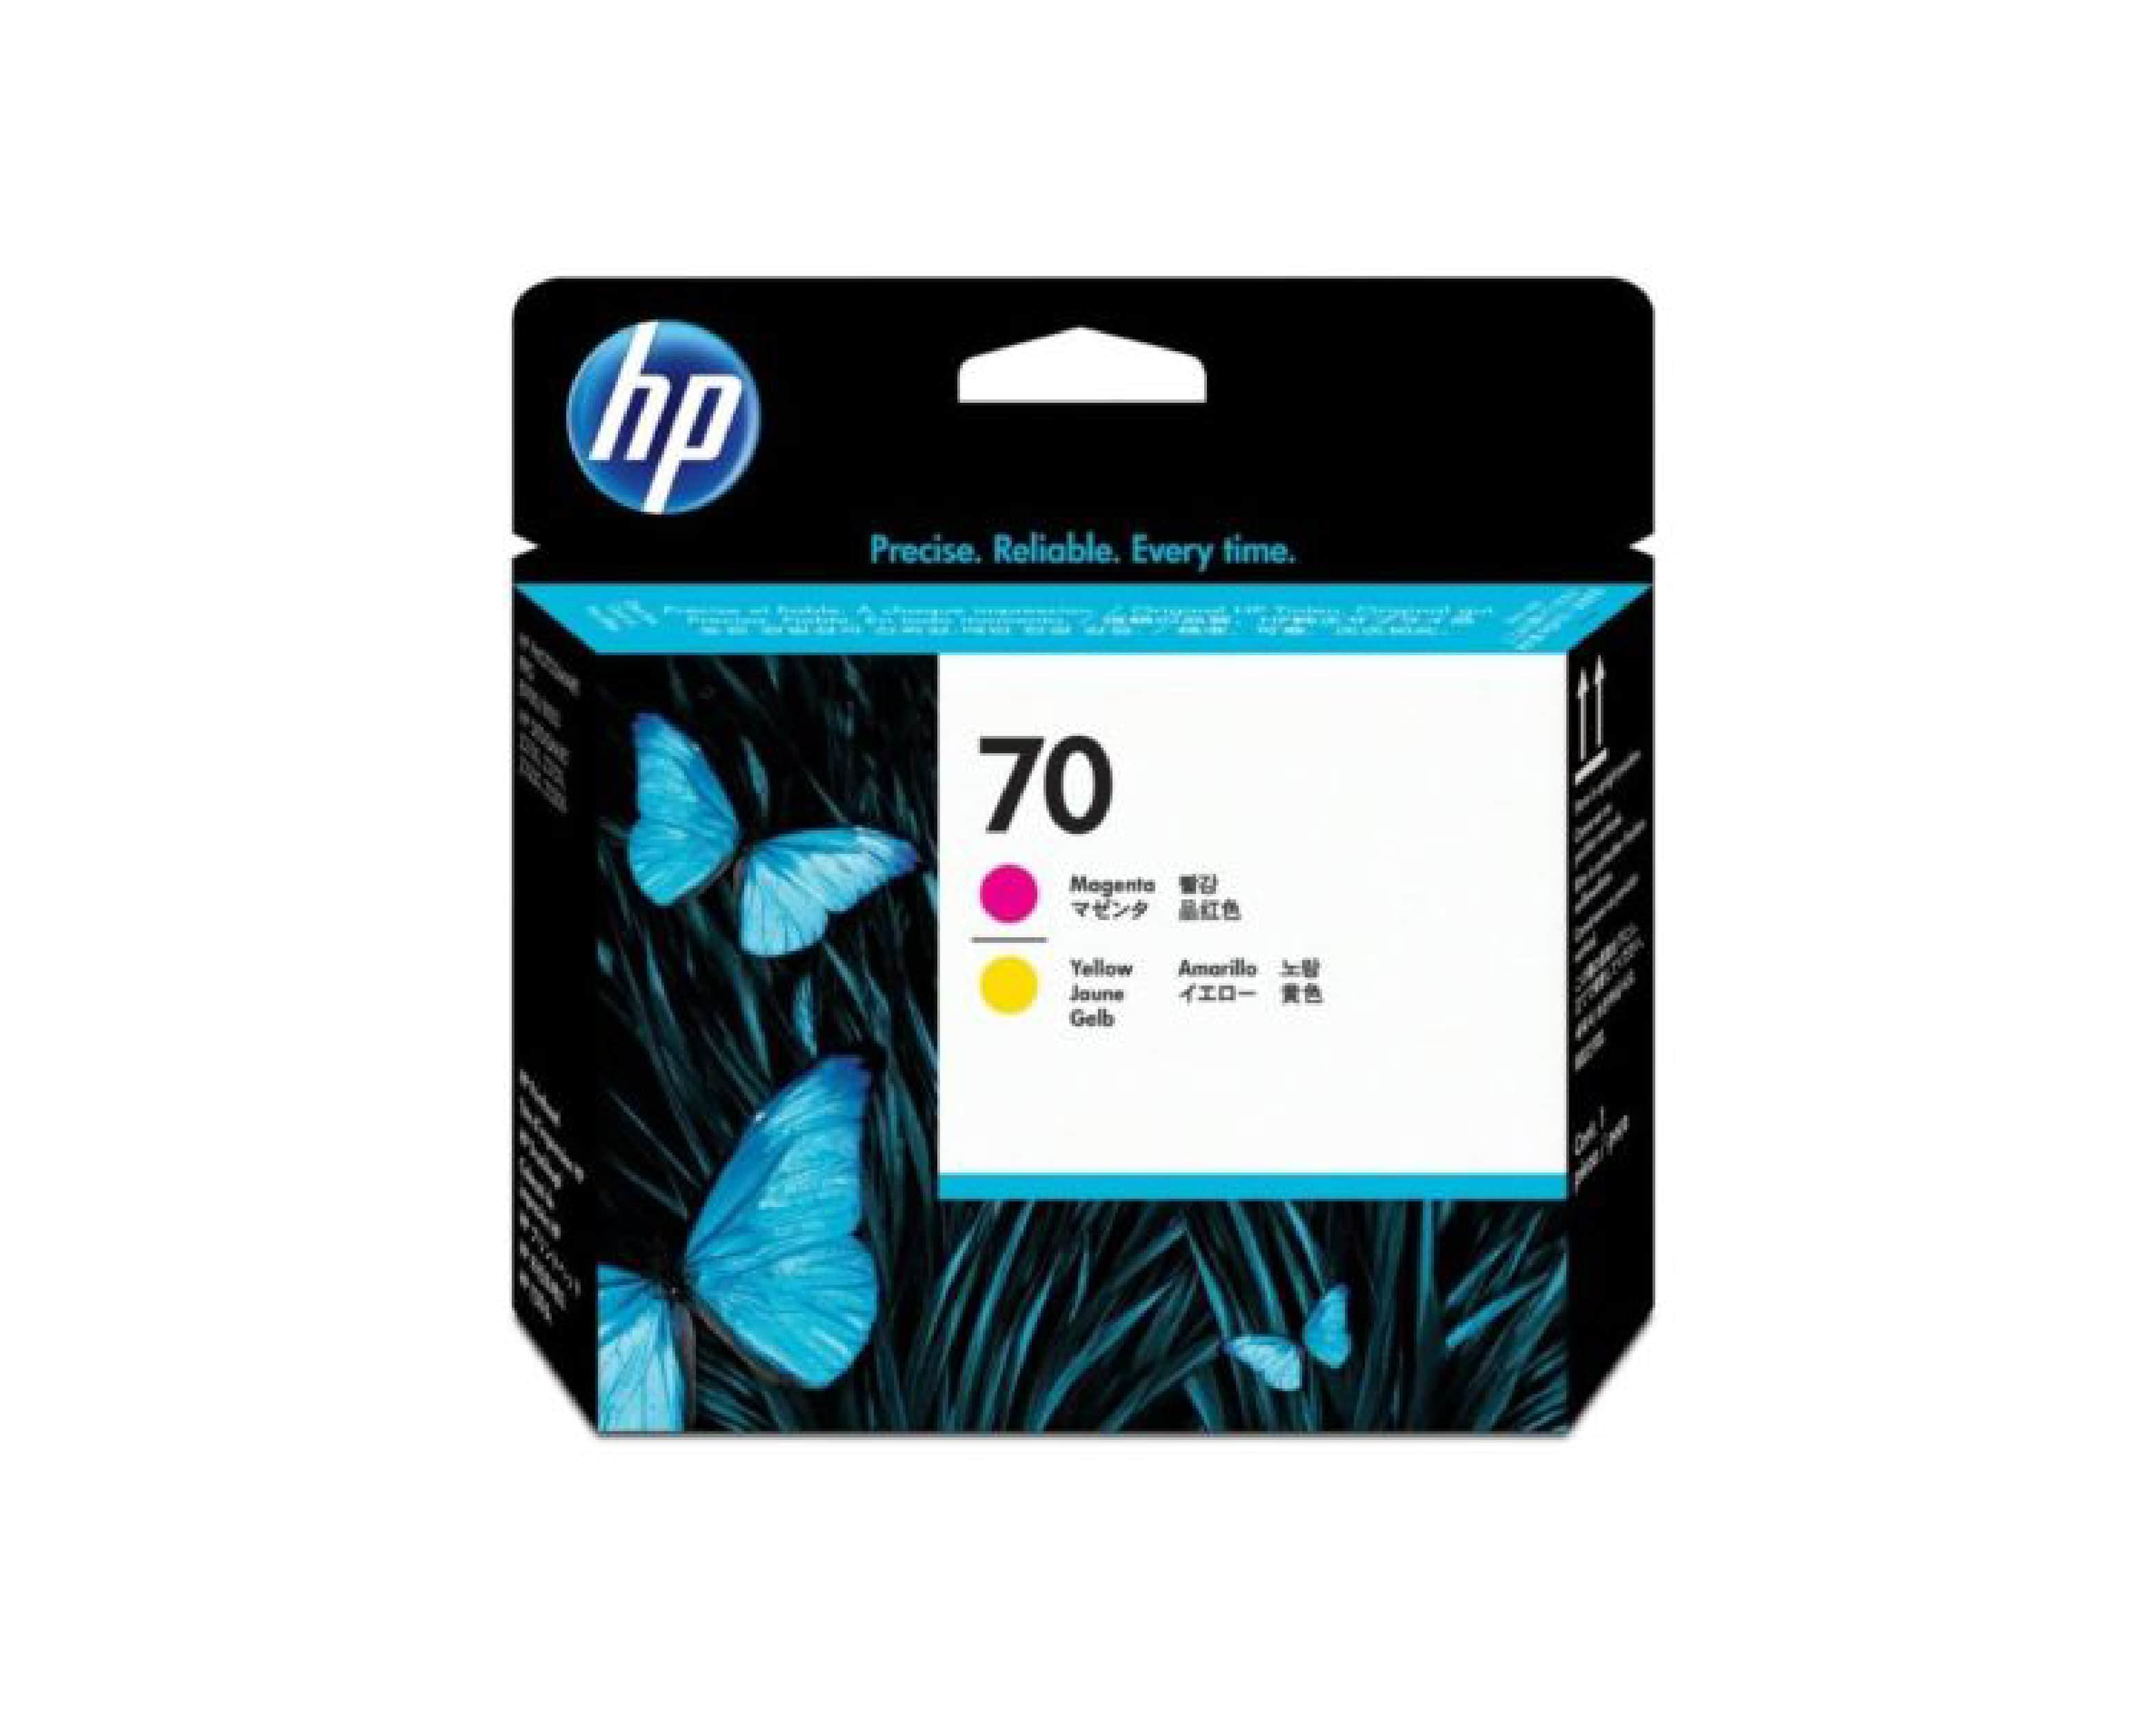 HP 70 DesignJet Printhead - Magenta & Yellow